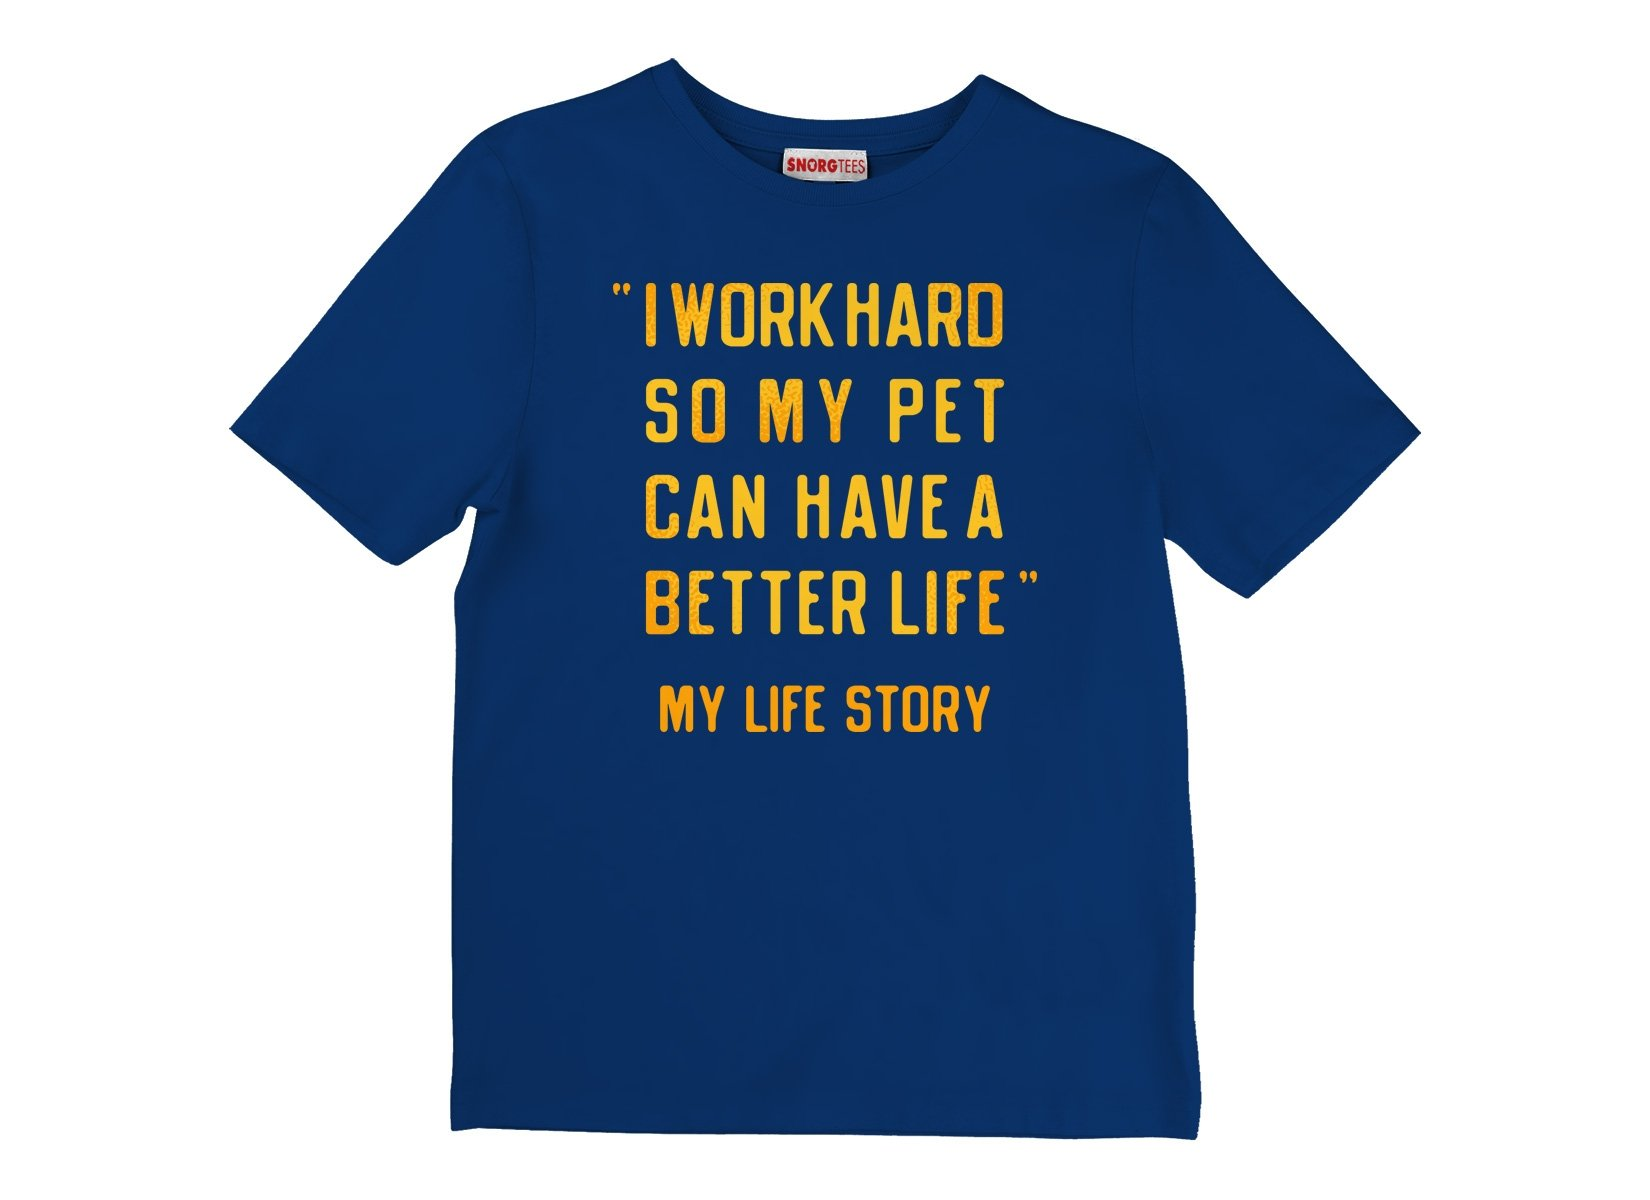 I Work Hard So My Pet Can Have A Better Life on Kids T-Shirt